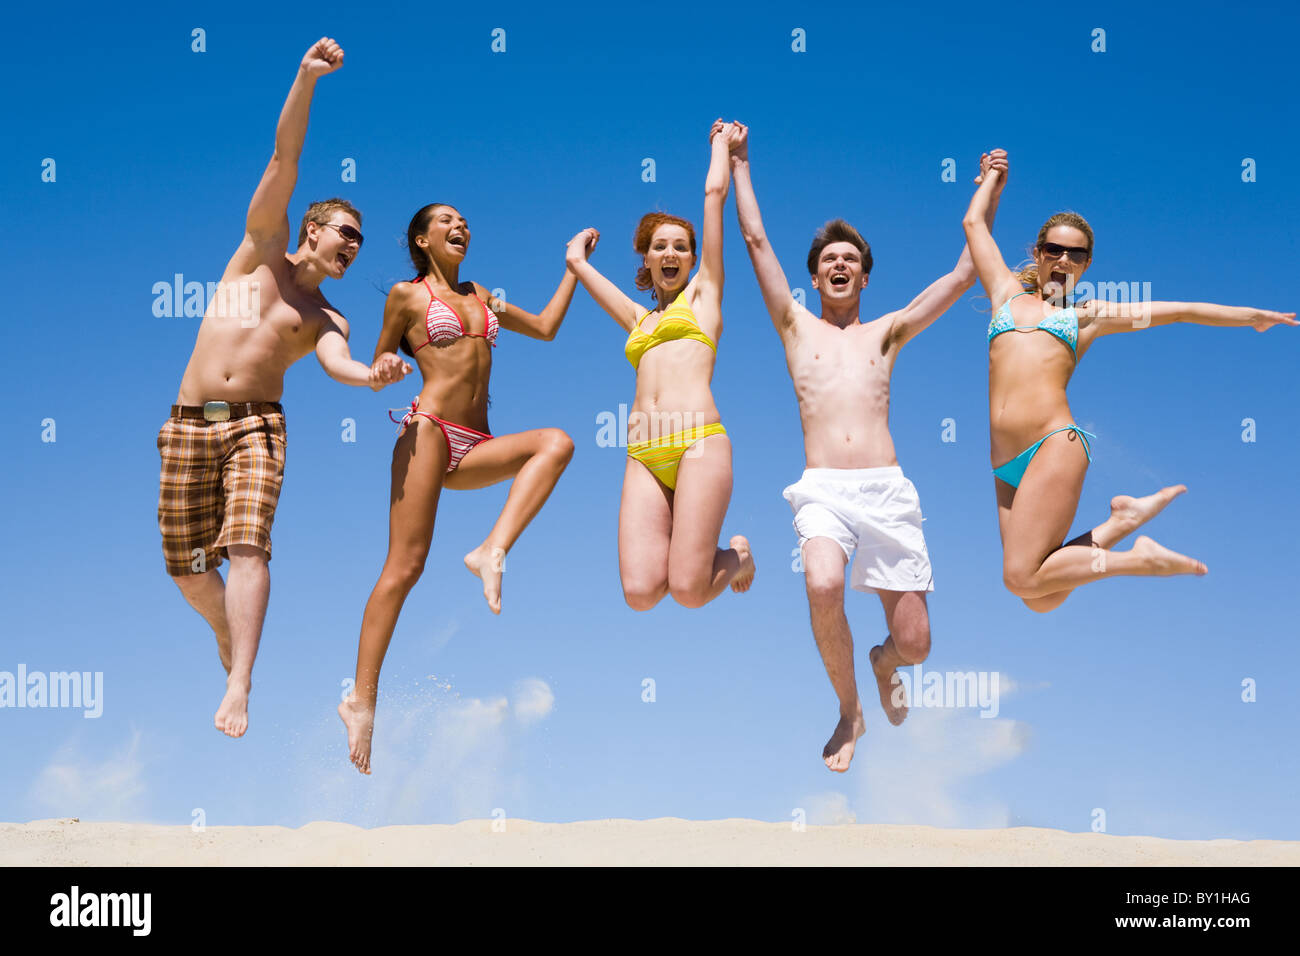 Joyful team of friends holding for hands each other and jumping - Stock Image